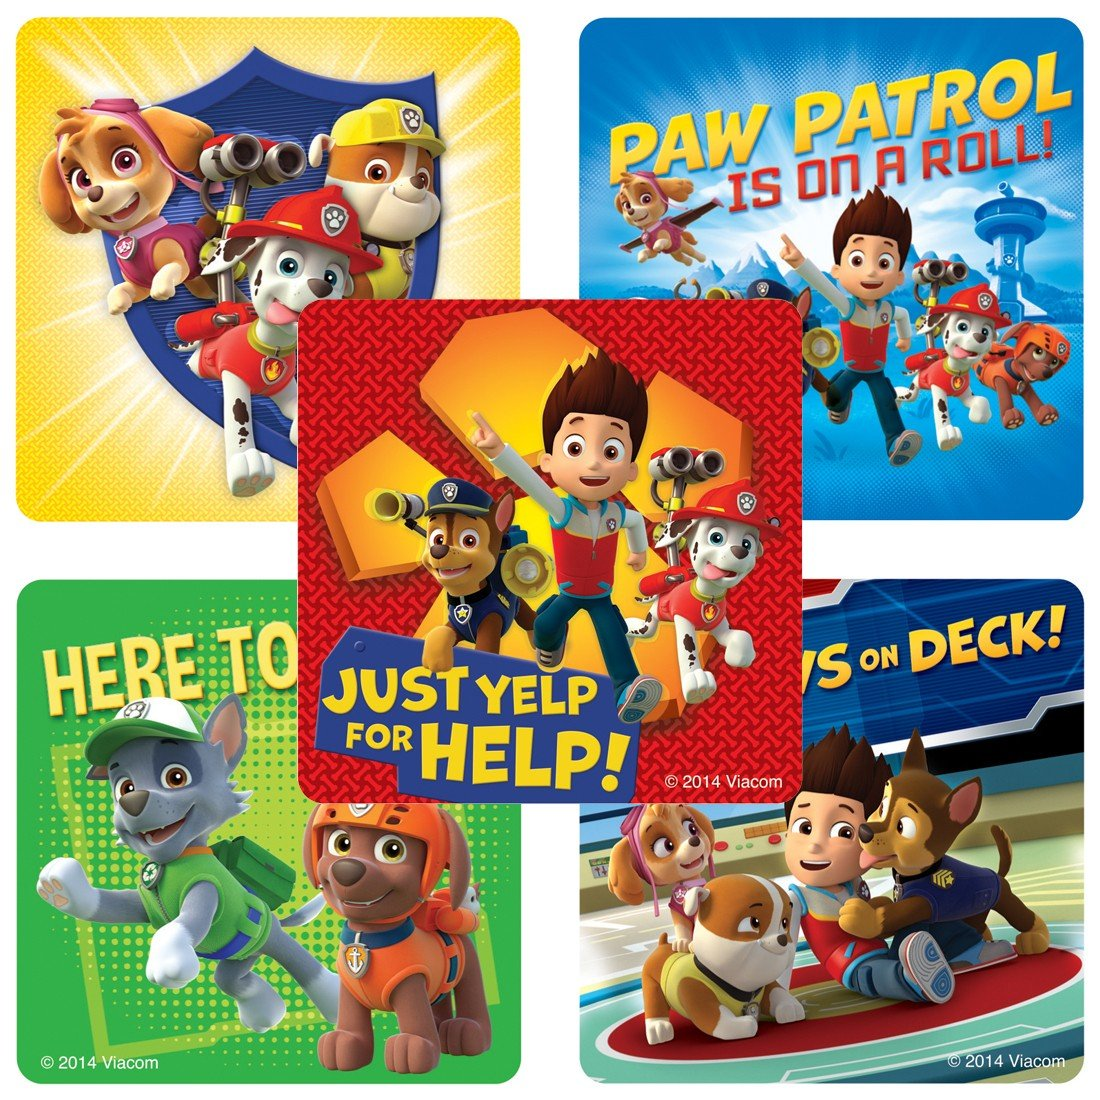 Paw Patrol Party Favor Pack For 24Perfect to Fill Your Goodie Bags With Paw Pencils, Paw Erasers, Rubber Bracelets, Paw Patrol Stickers, Tattoos, and Exclusive Paw Birthday Pin By Another Dream! by Another Dream (Image #1)